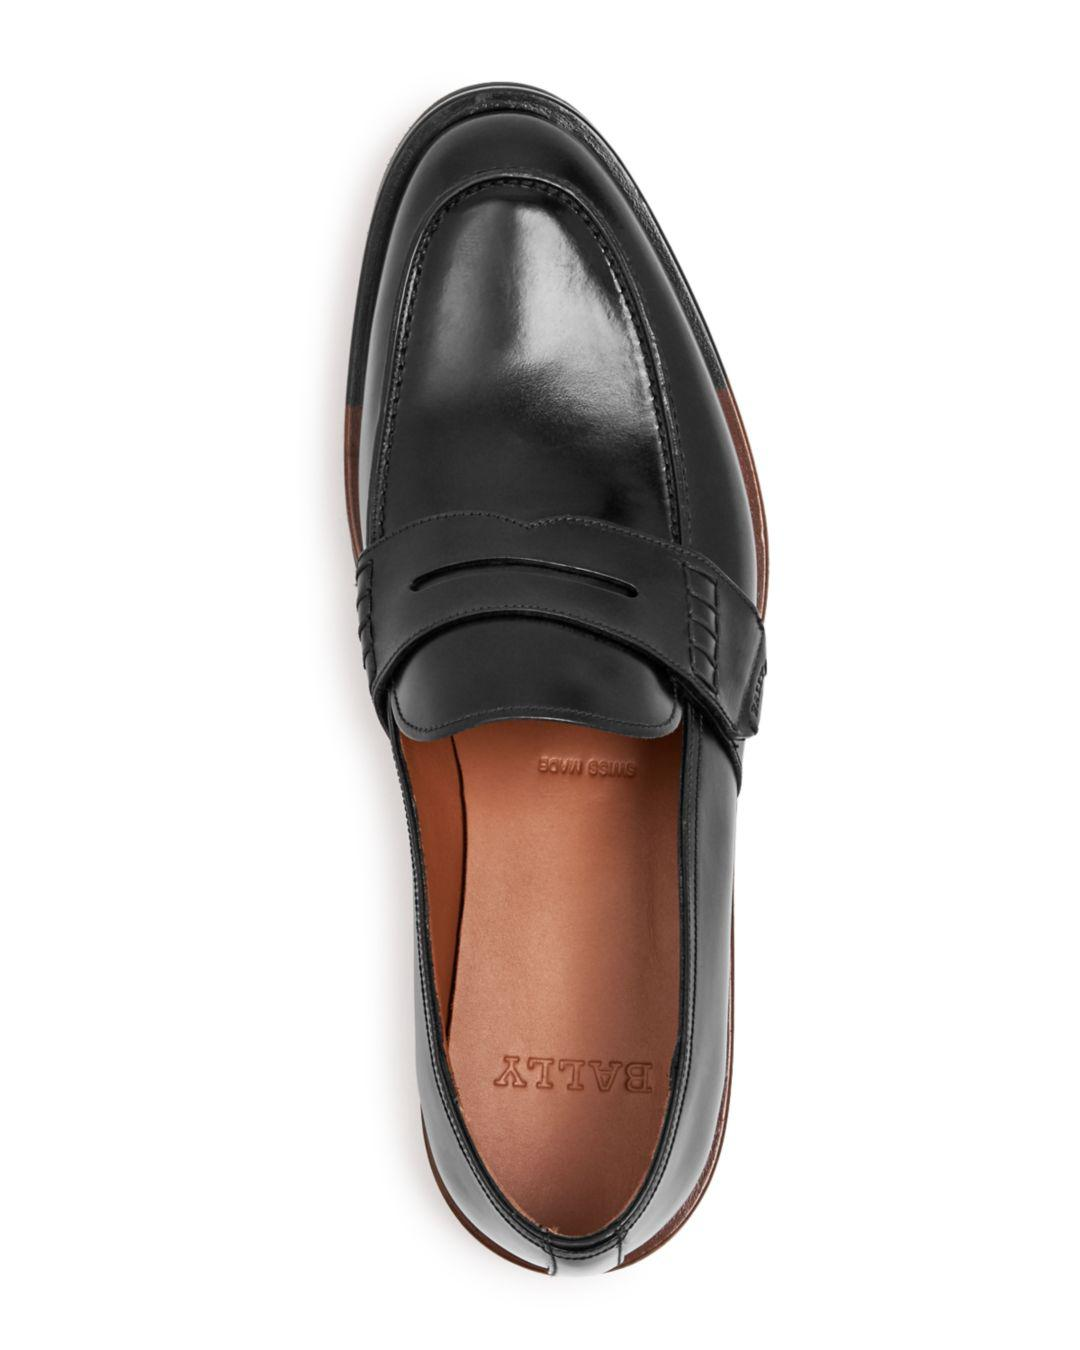 72103fd4dc4 Bally Men s Barox Leather Apron-toe Penny Loafers in Black for Men - Lyst